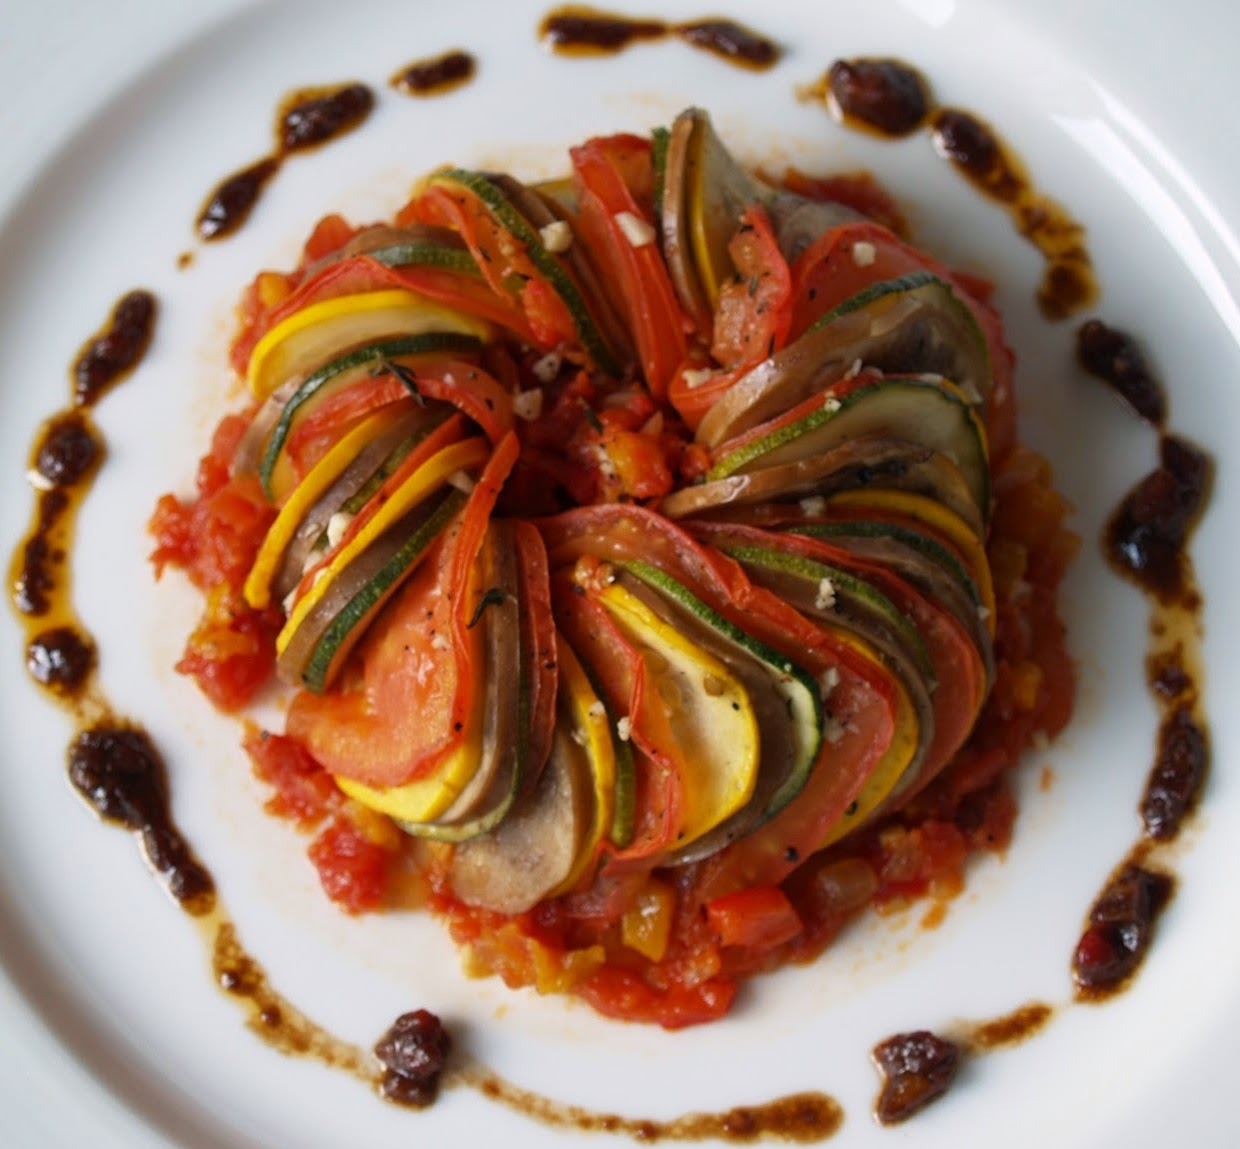 ratatouille an easy french ratatouille recipe by @ kipkit easy french ...